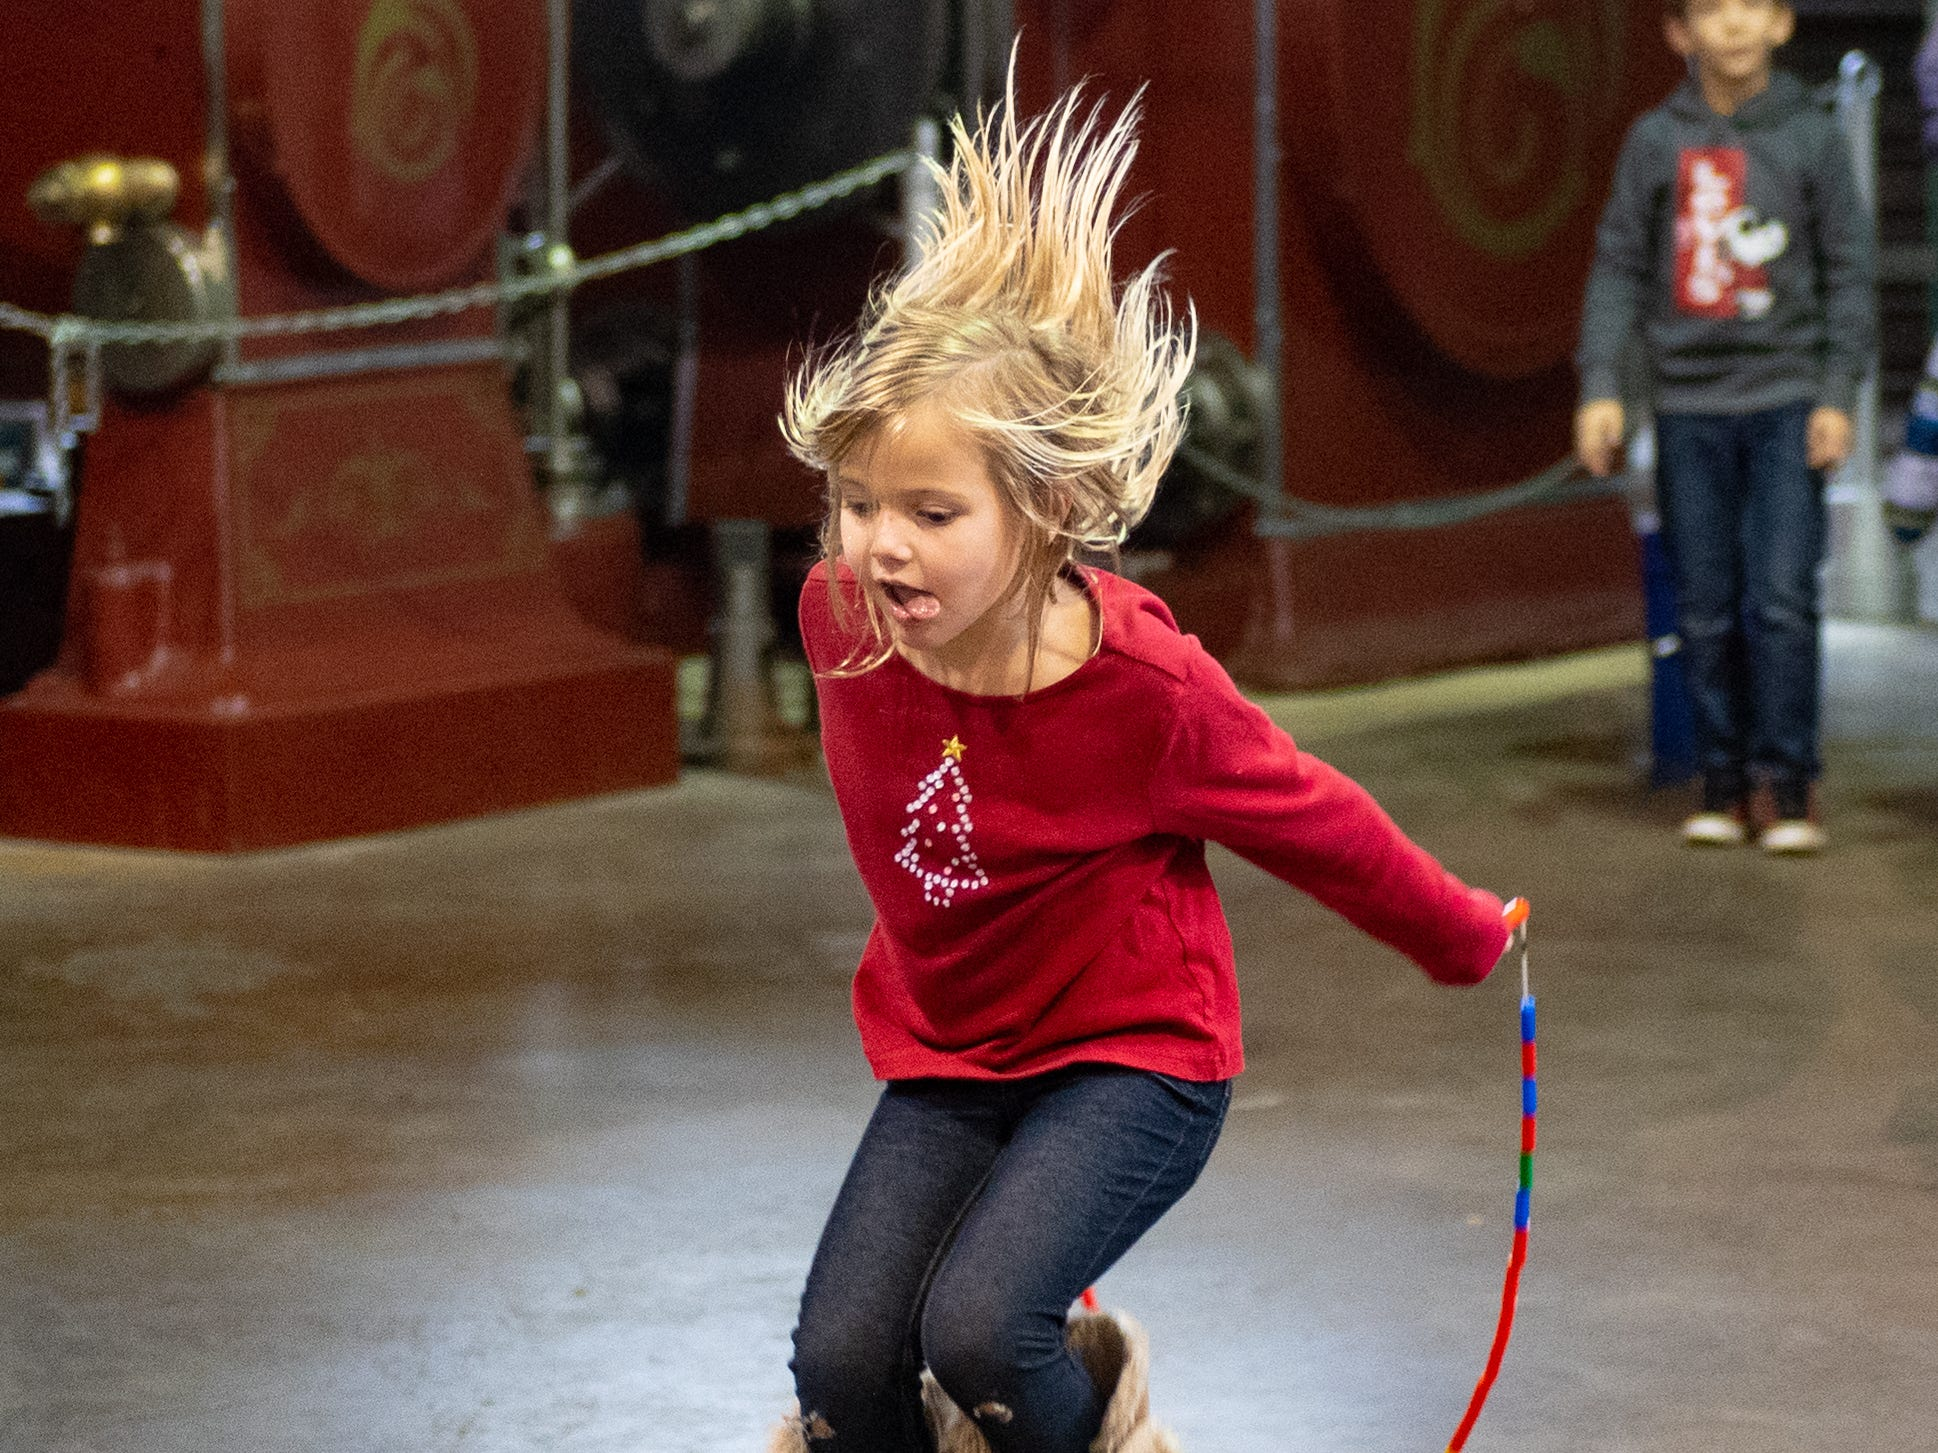 Iola Henz, 5, plays with her new jump rope that she made during family activity day at the Agricultural and Industrial Museum, Friday, December 28, 2018.